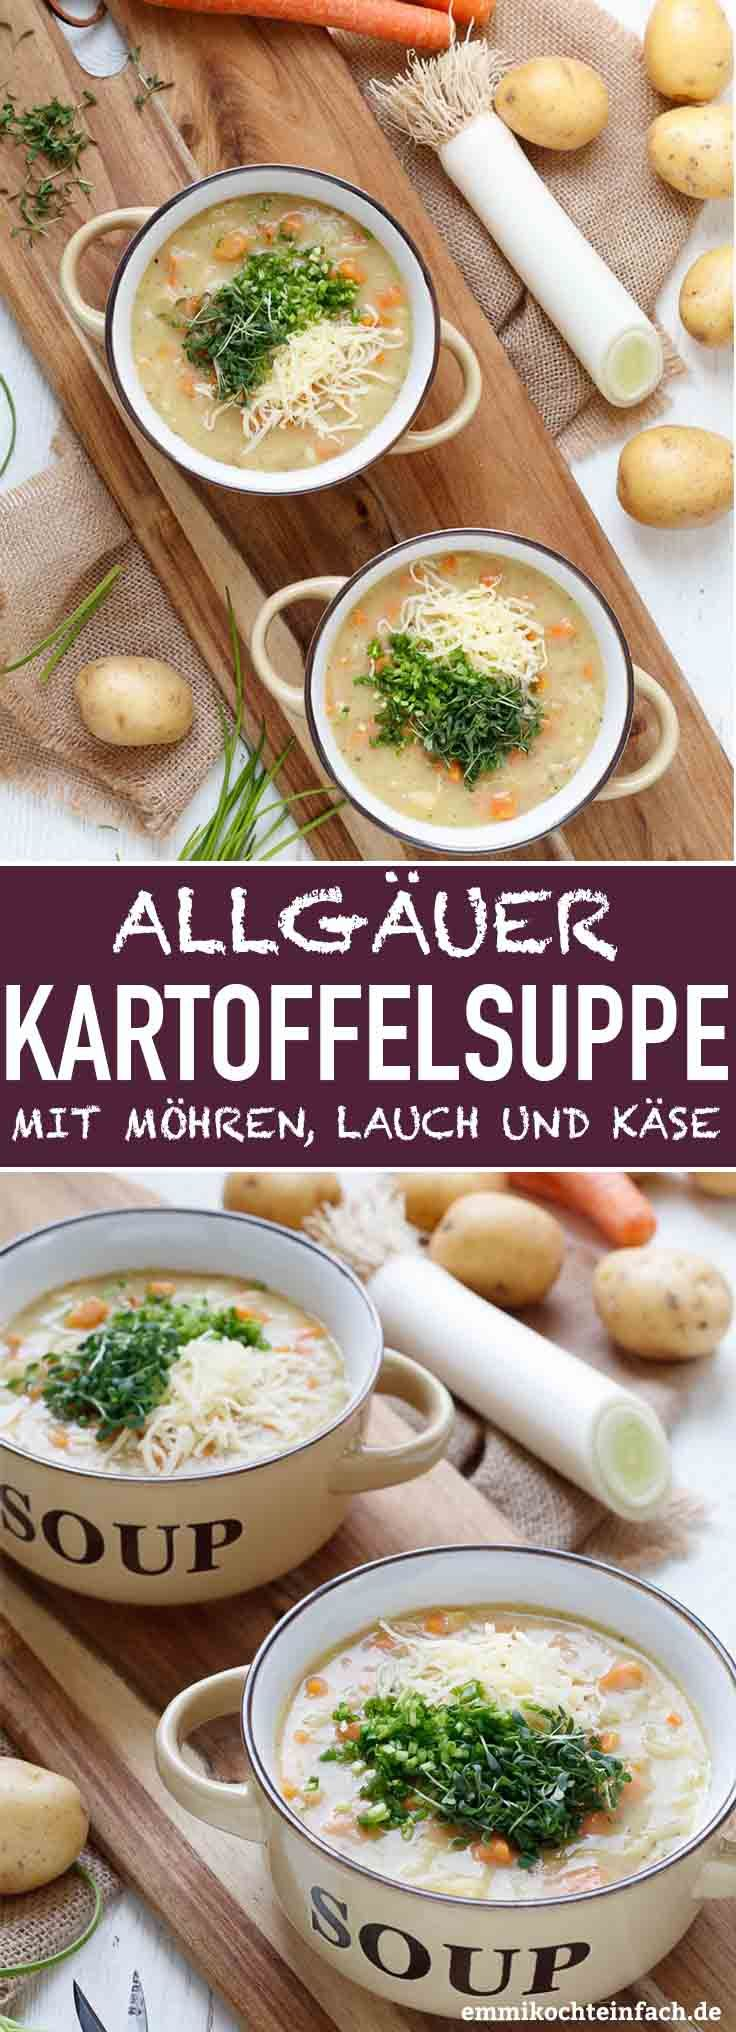 Photo of Allgäu potato soup with carrots, leeks and Emmental cheese